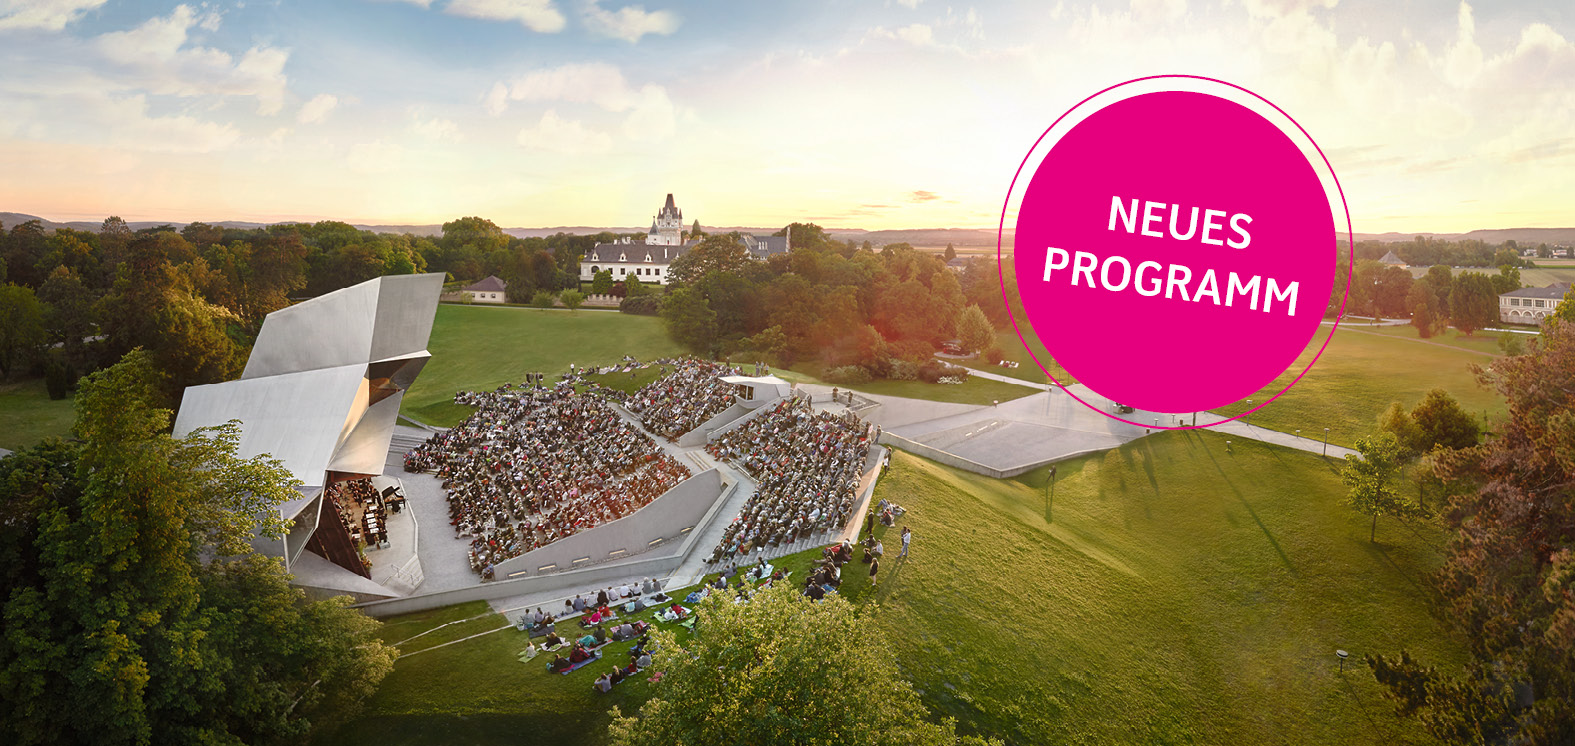 The Grafenegg Festival will take place from 14 August - 6 September 2020 under special protective measures and with an adapted program. Here you can get an overview of the new programme.